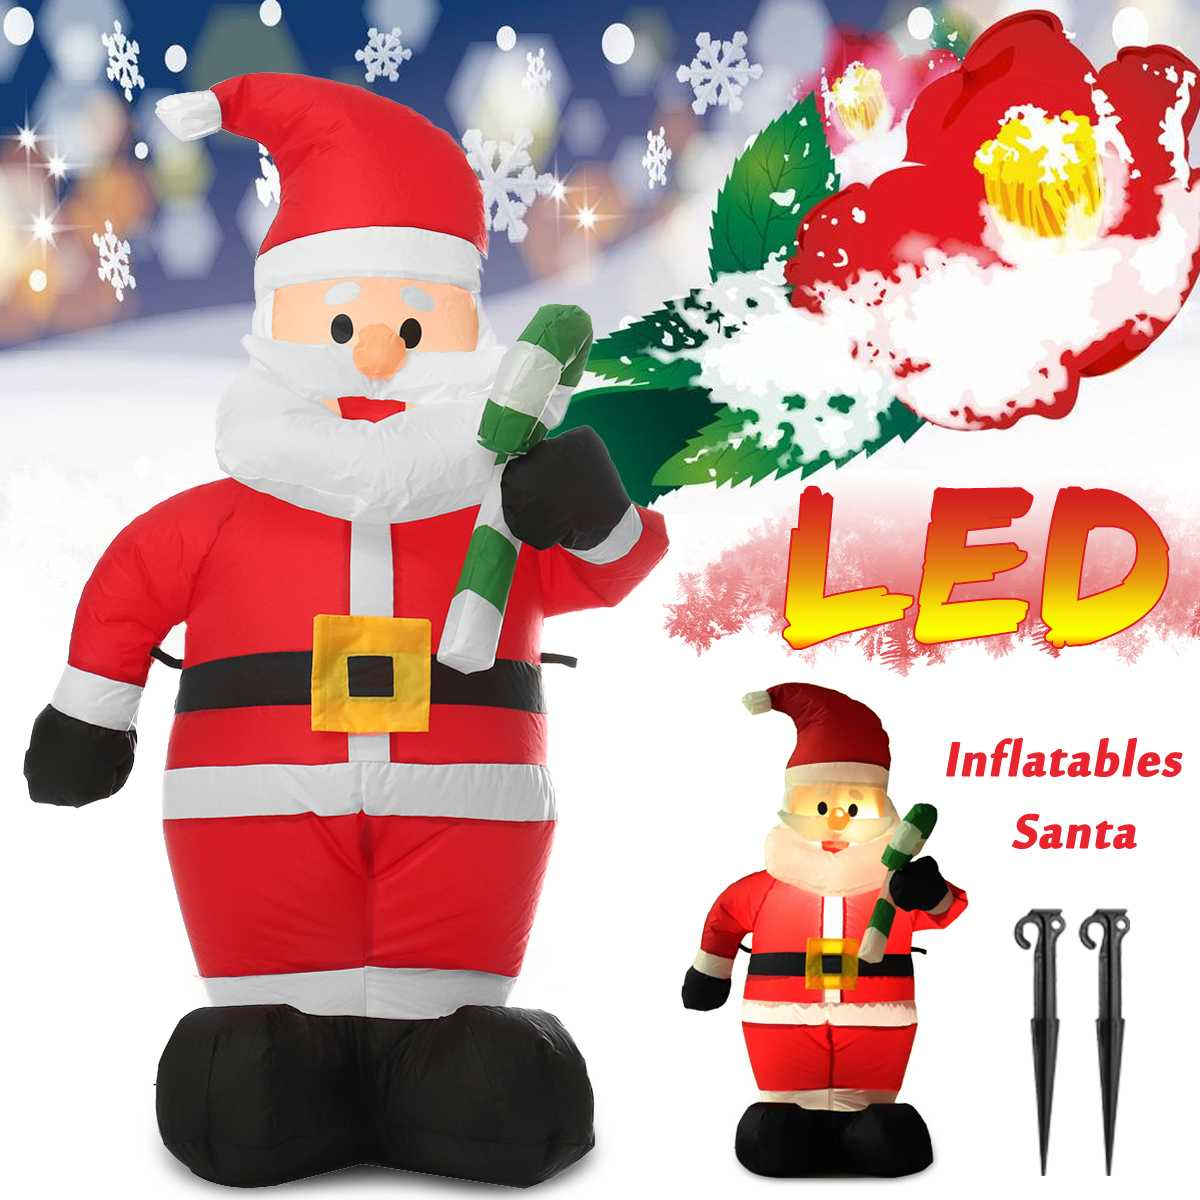 1.2M LED Merry Christmas Air Inflatable Crutches Santa Snowman Claus Indoor Outdoor Layout Garden Home Holiday Party Decor Toys